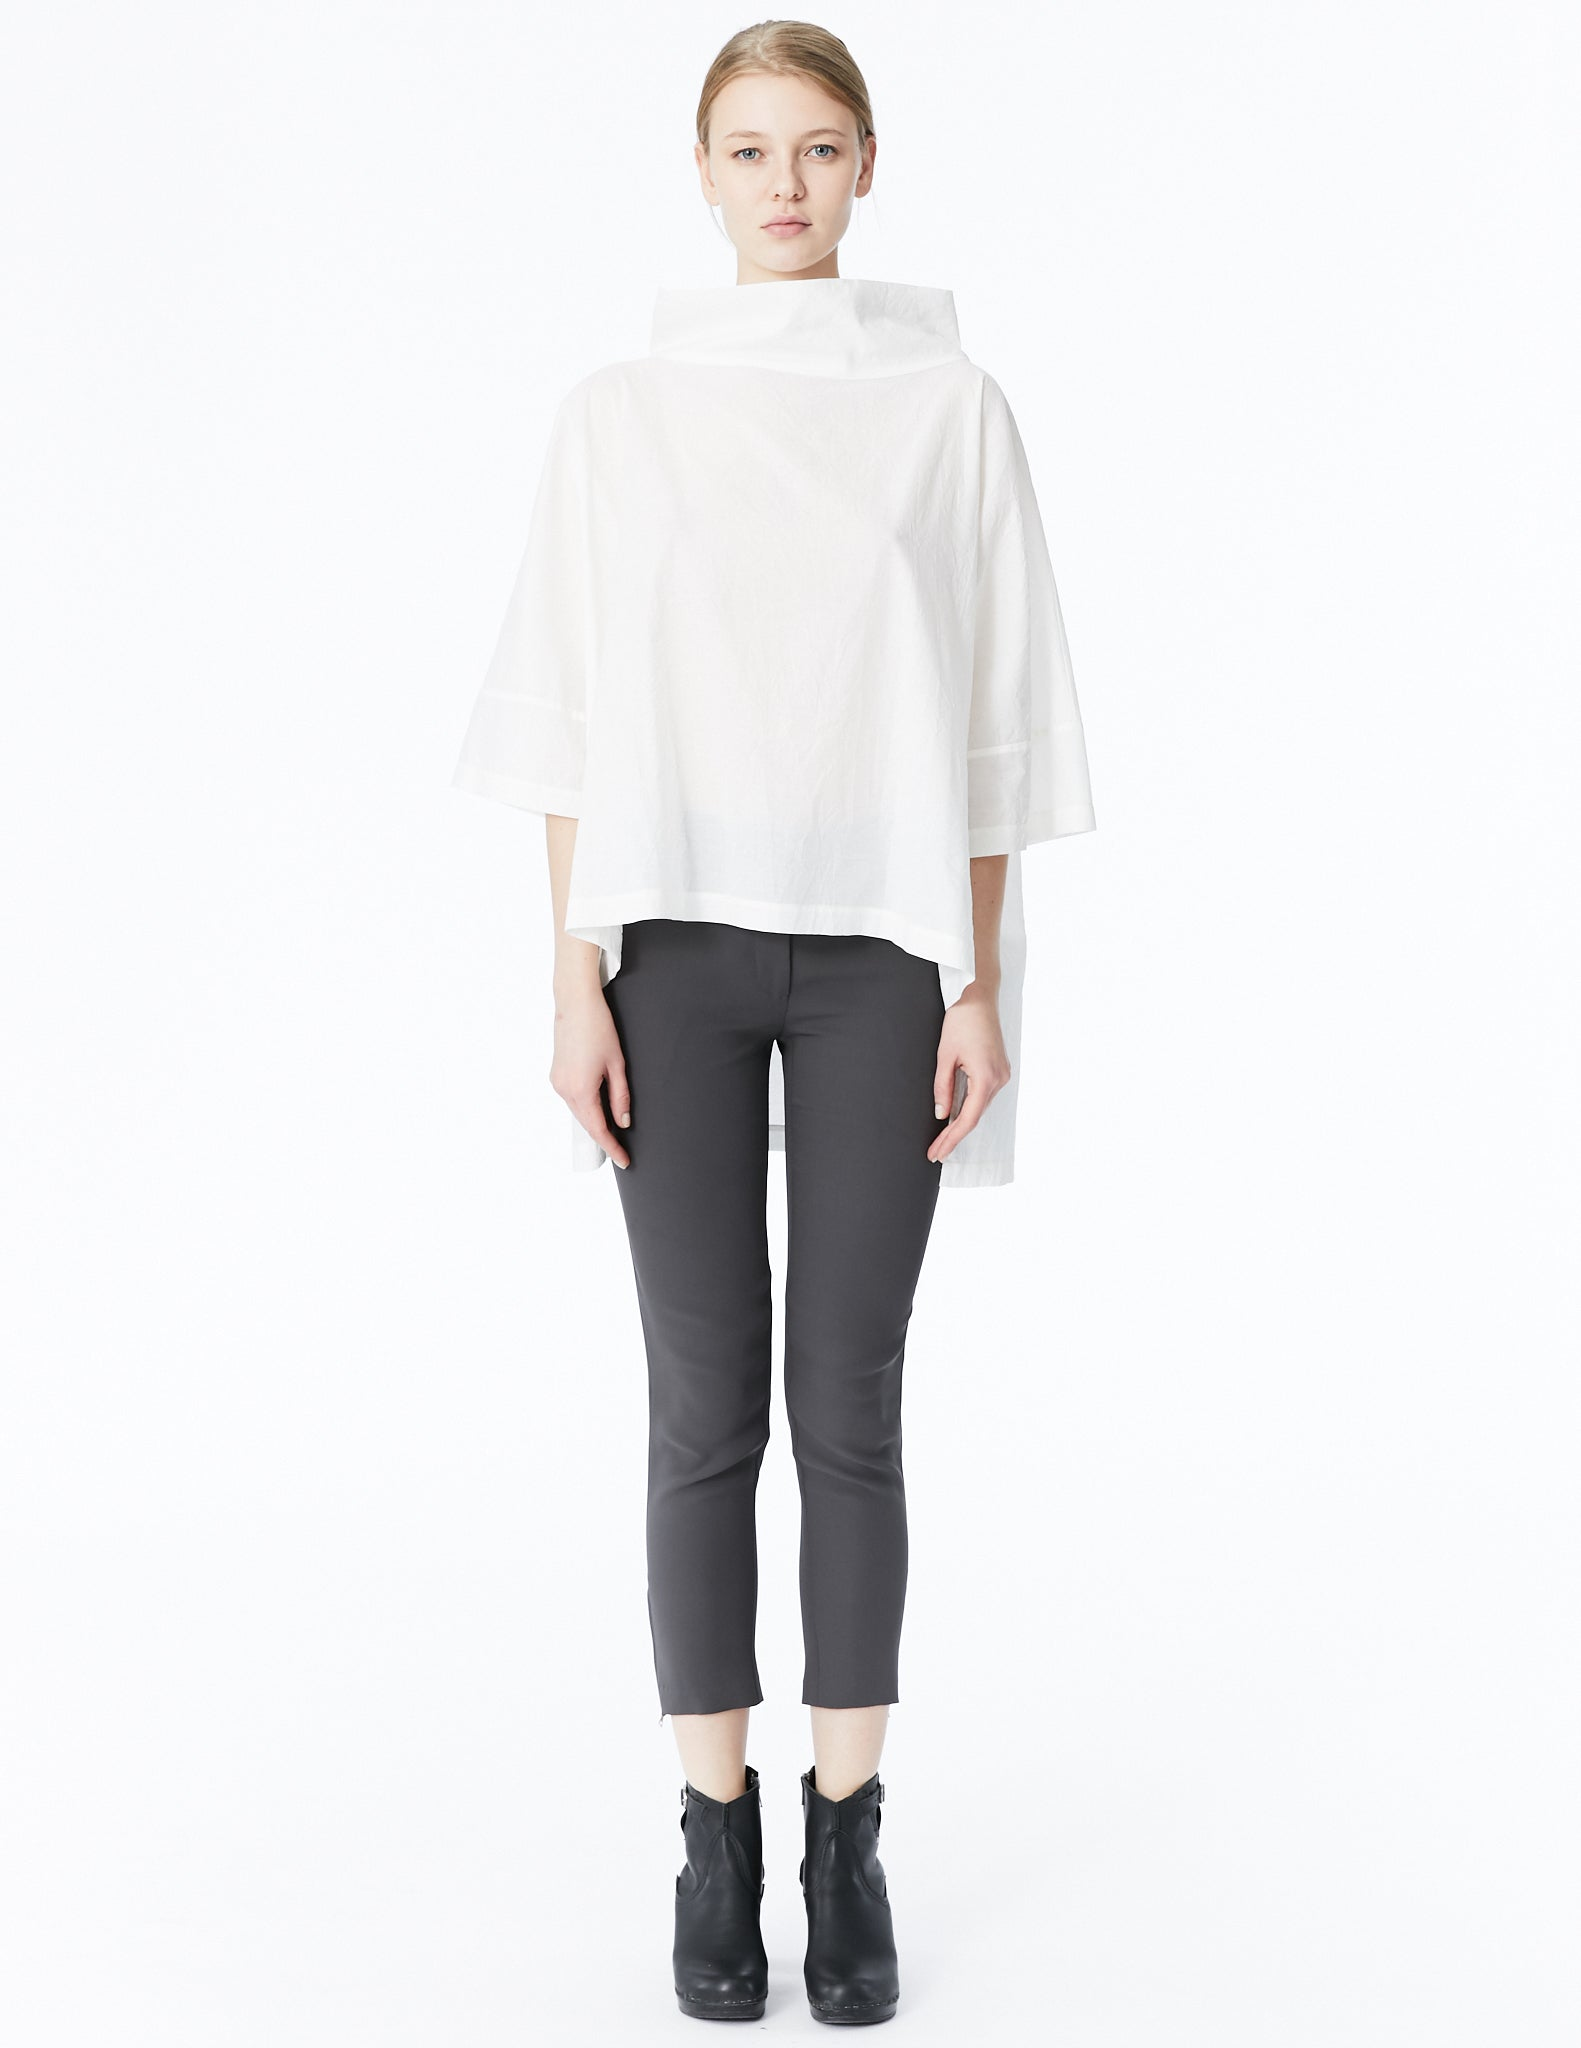 Morgane Le Fay Cotton Batiste Tunic With High Low Hem Oversized Sleeves And Standing